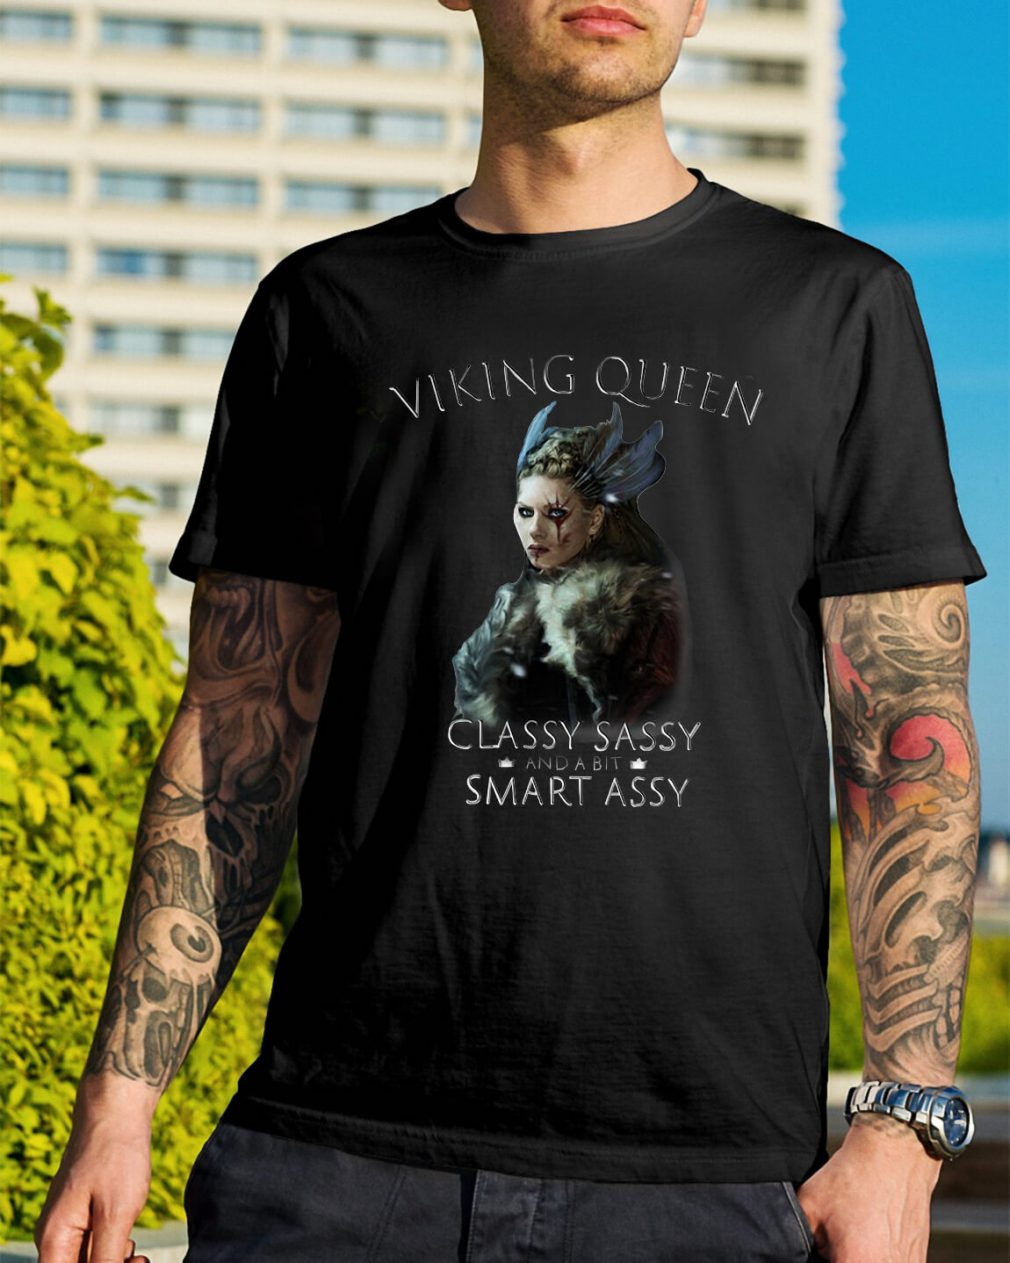 Viking queen classy sassy and a bit smart assy shirt